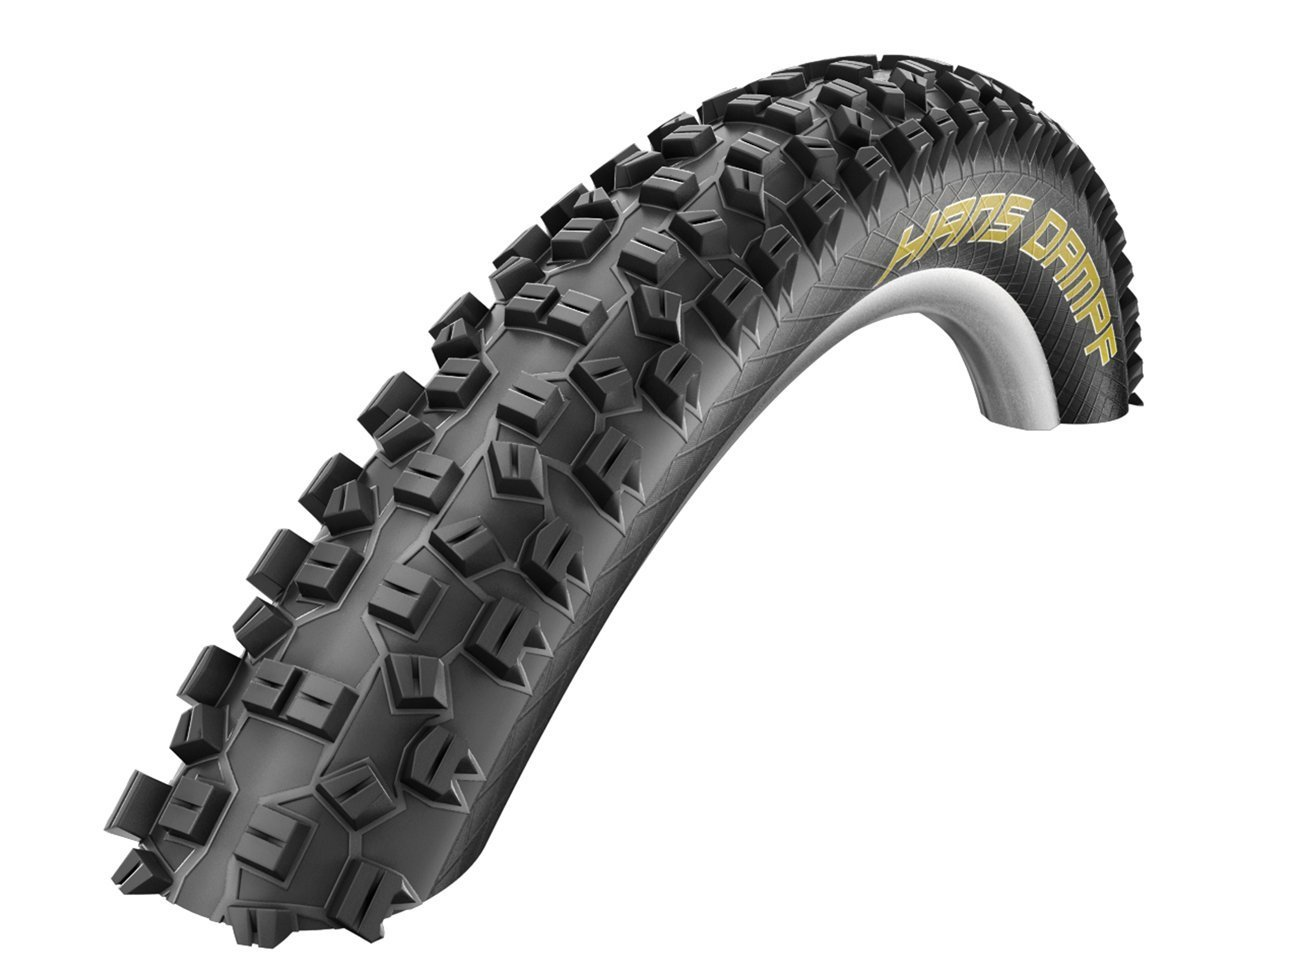 Schwalbe Hans Dampf Evolution Line Tire with Trail Star Compound 29 x 2.35-Inch Black [並行輸入品] B077QH3HGR